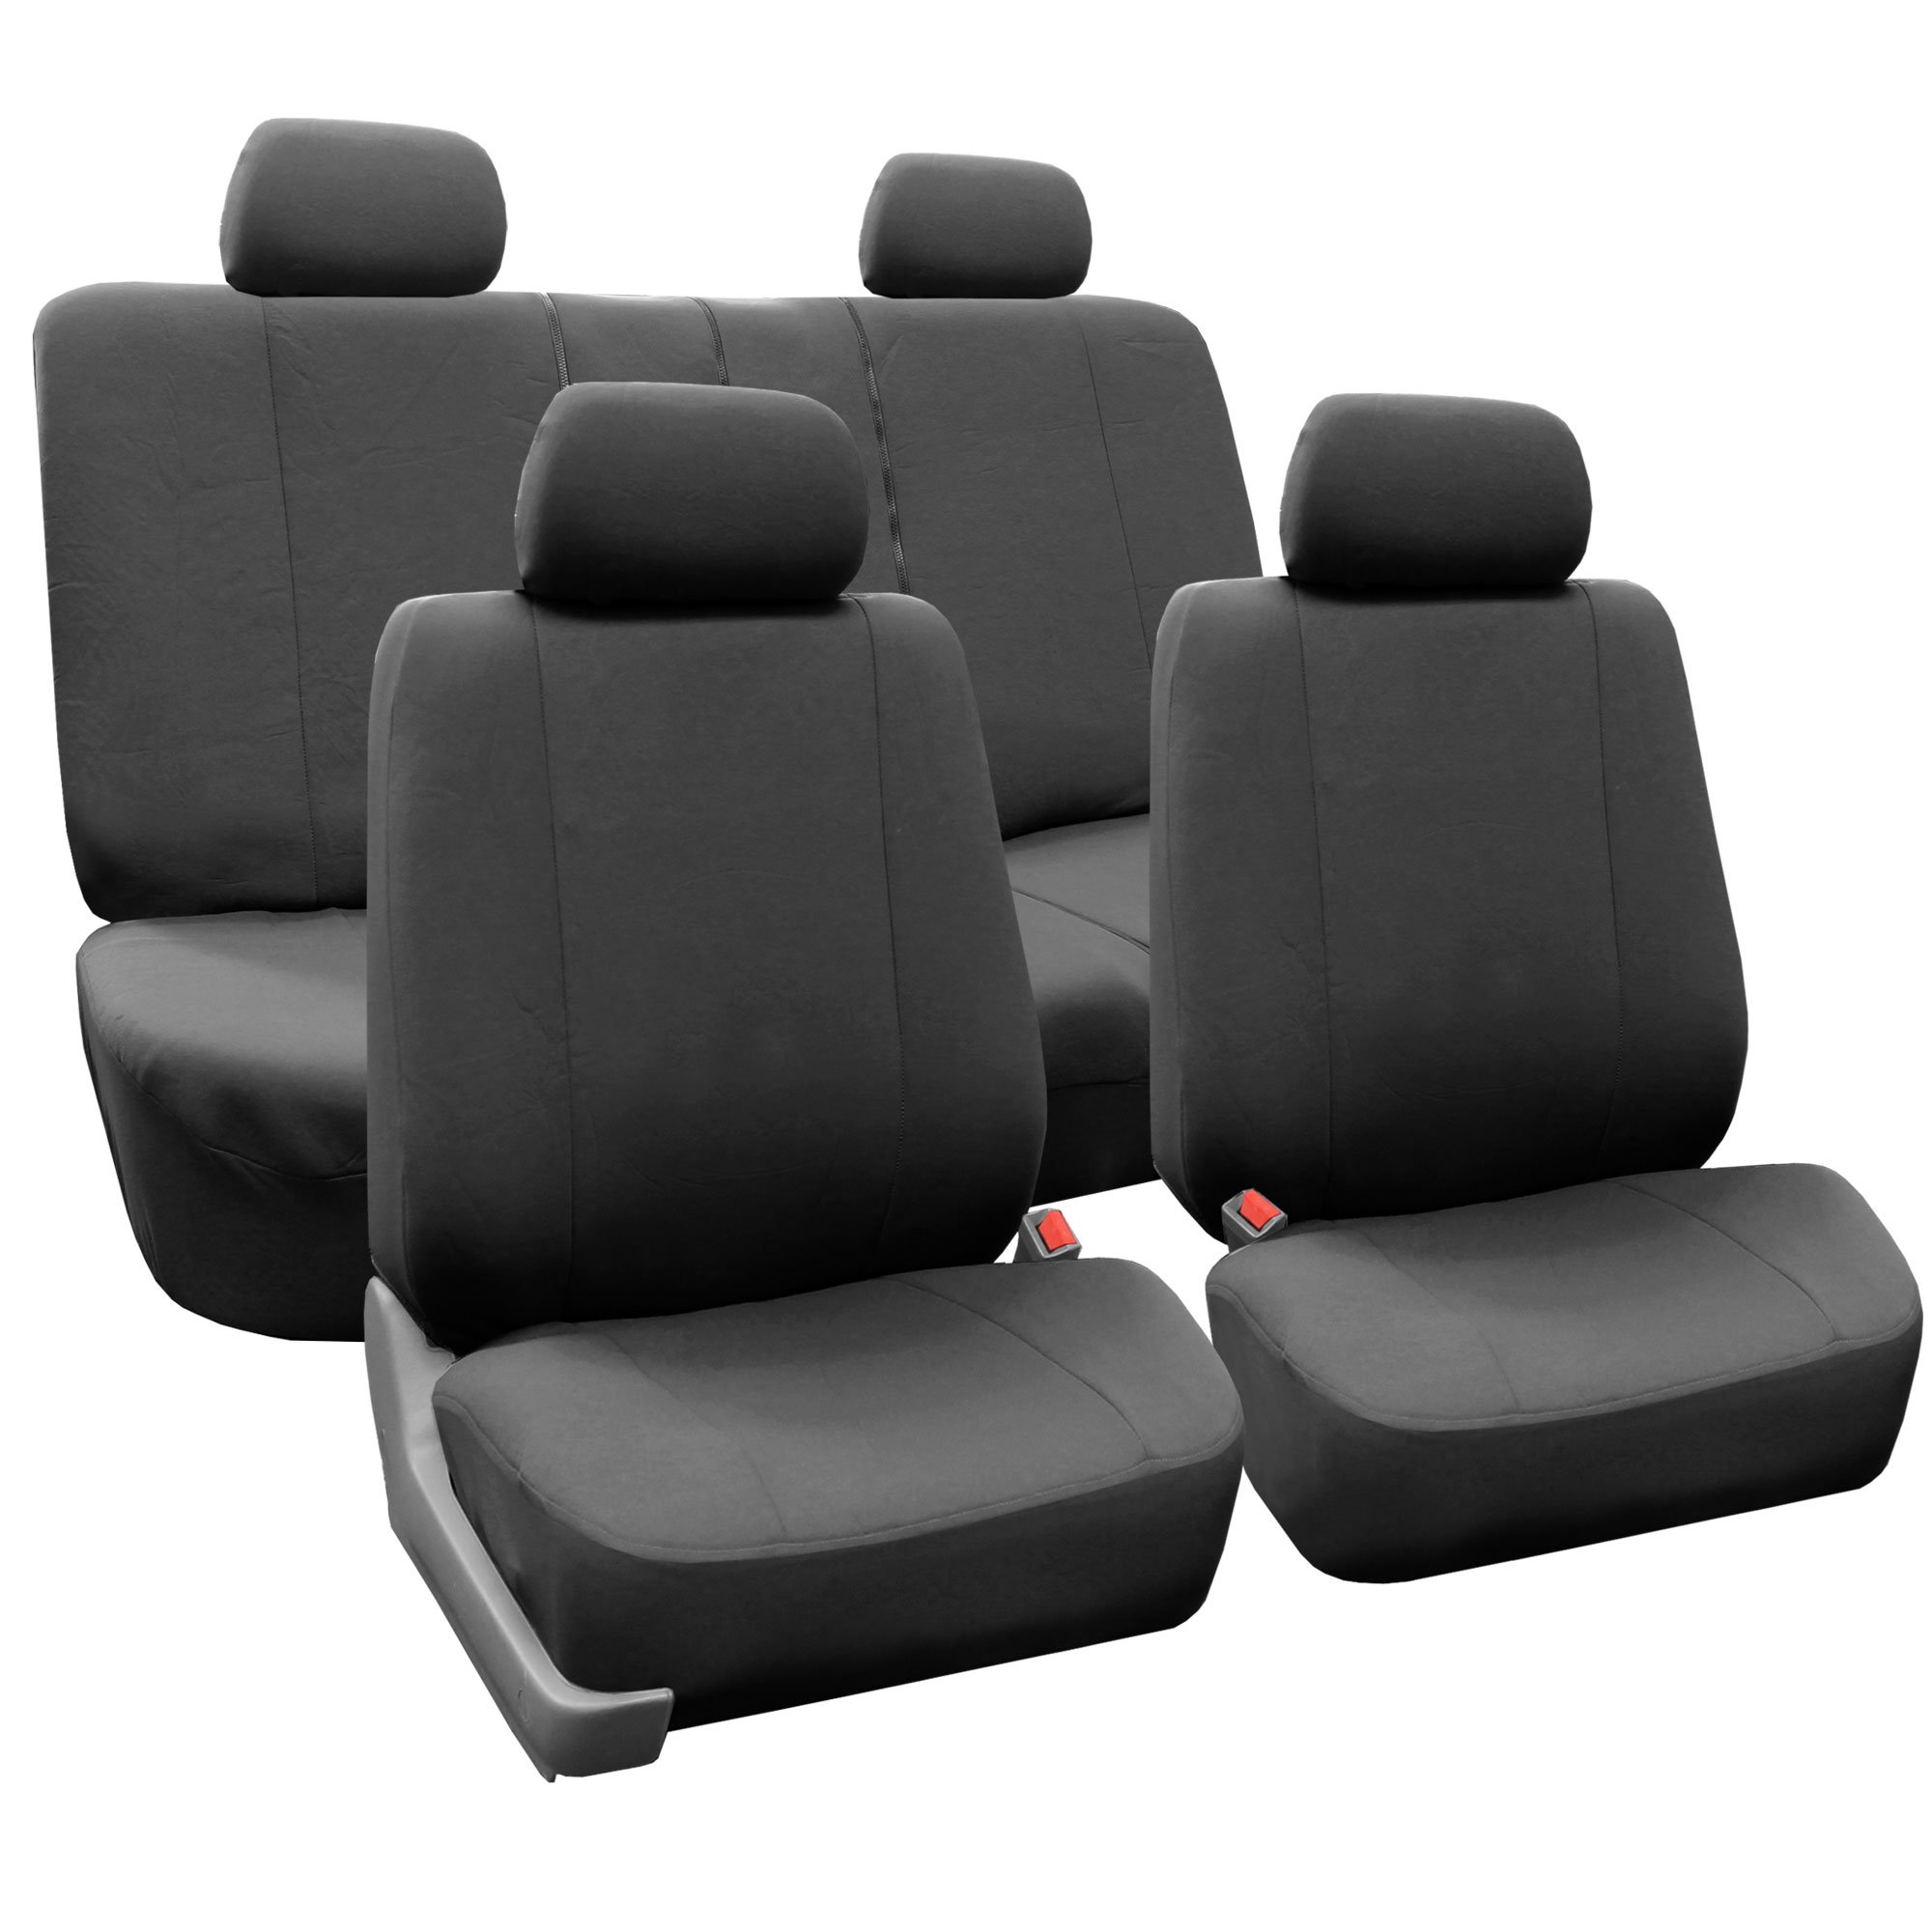 FH Group FB052114 Supreme Cloth Seat Covers (Charcoal) Full Set with Gift - Universal Fit for Trucks, SUVs, and Vans